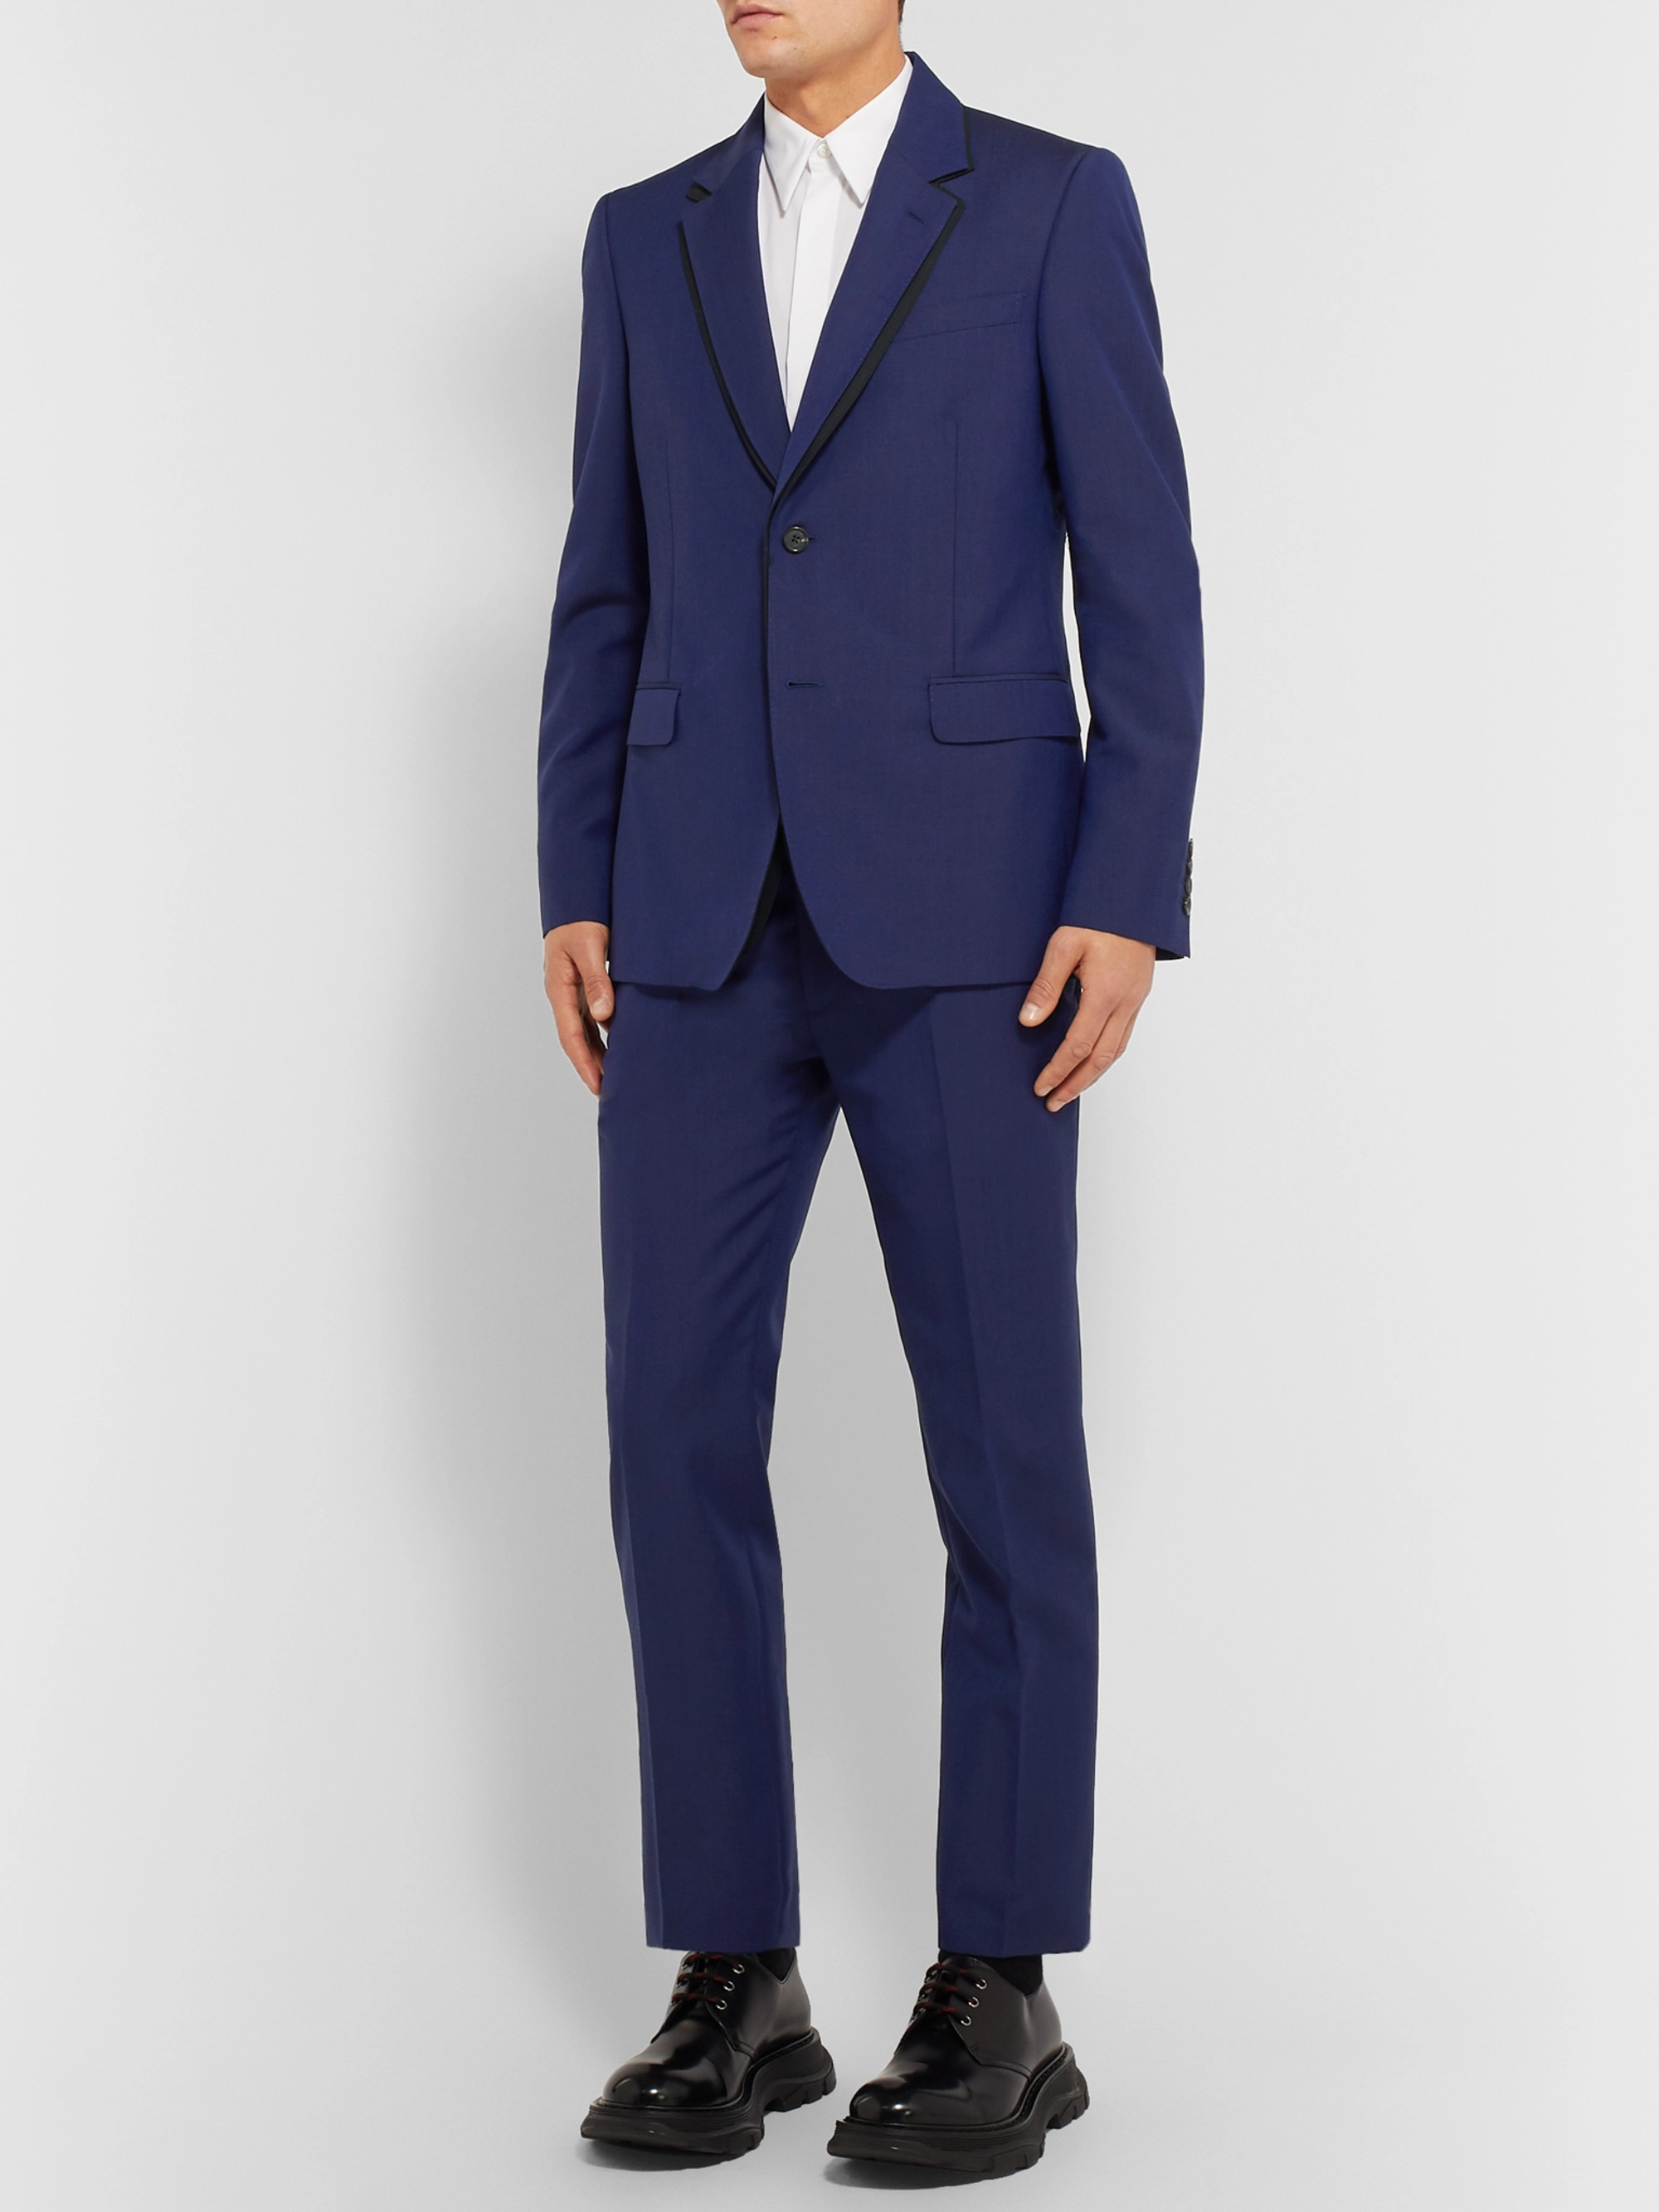 Alexander McQueen Royal-Blue Slim-Fit Wool and Mohair-Blend Suit Jacket